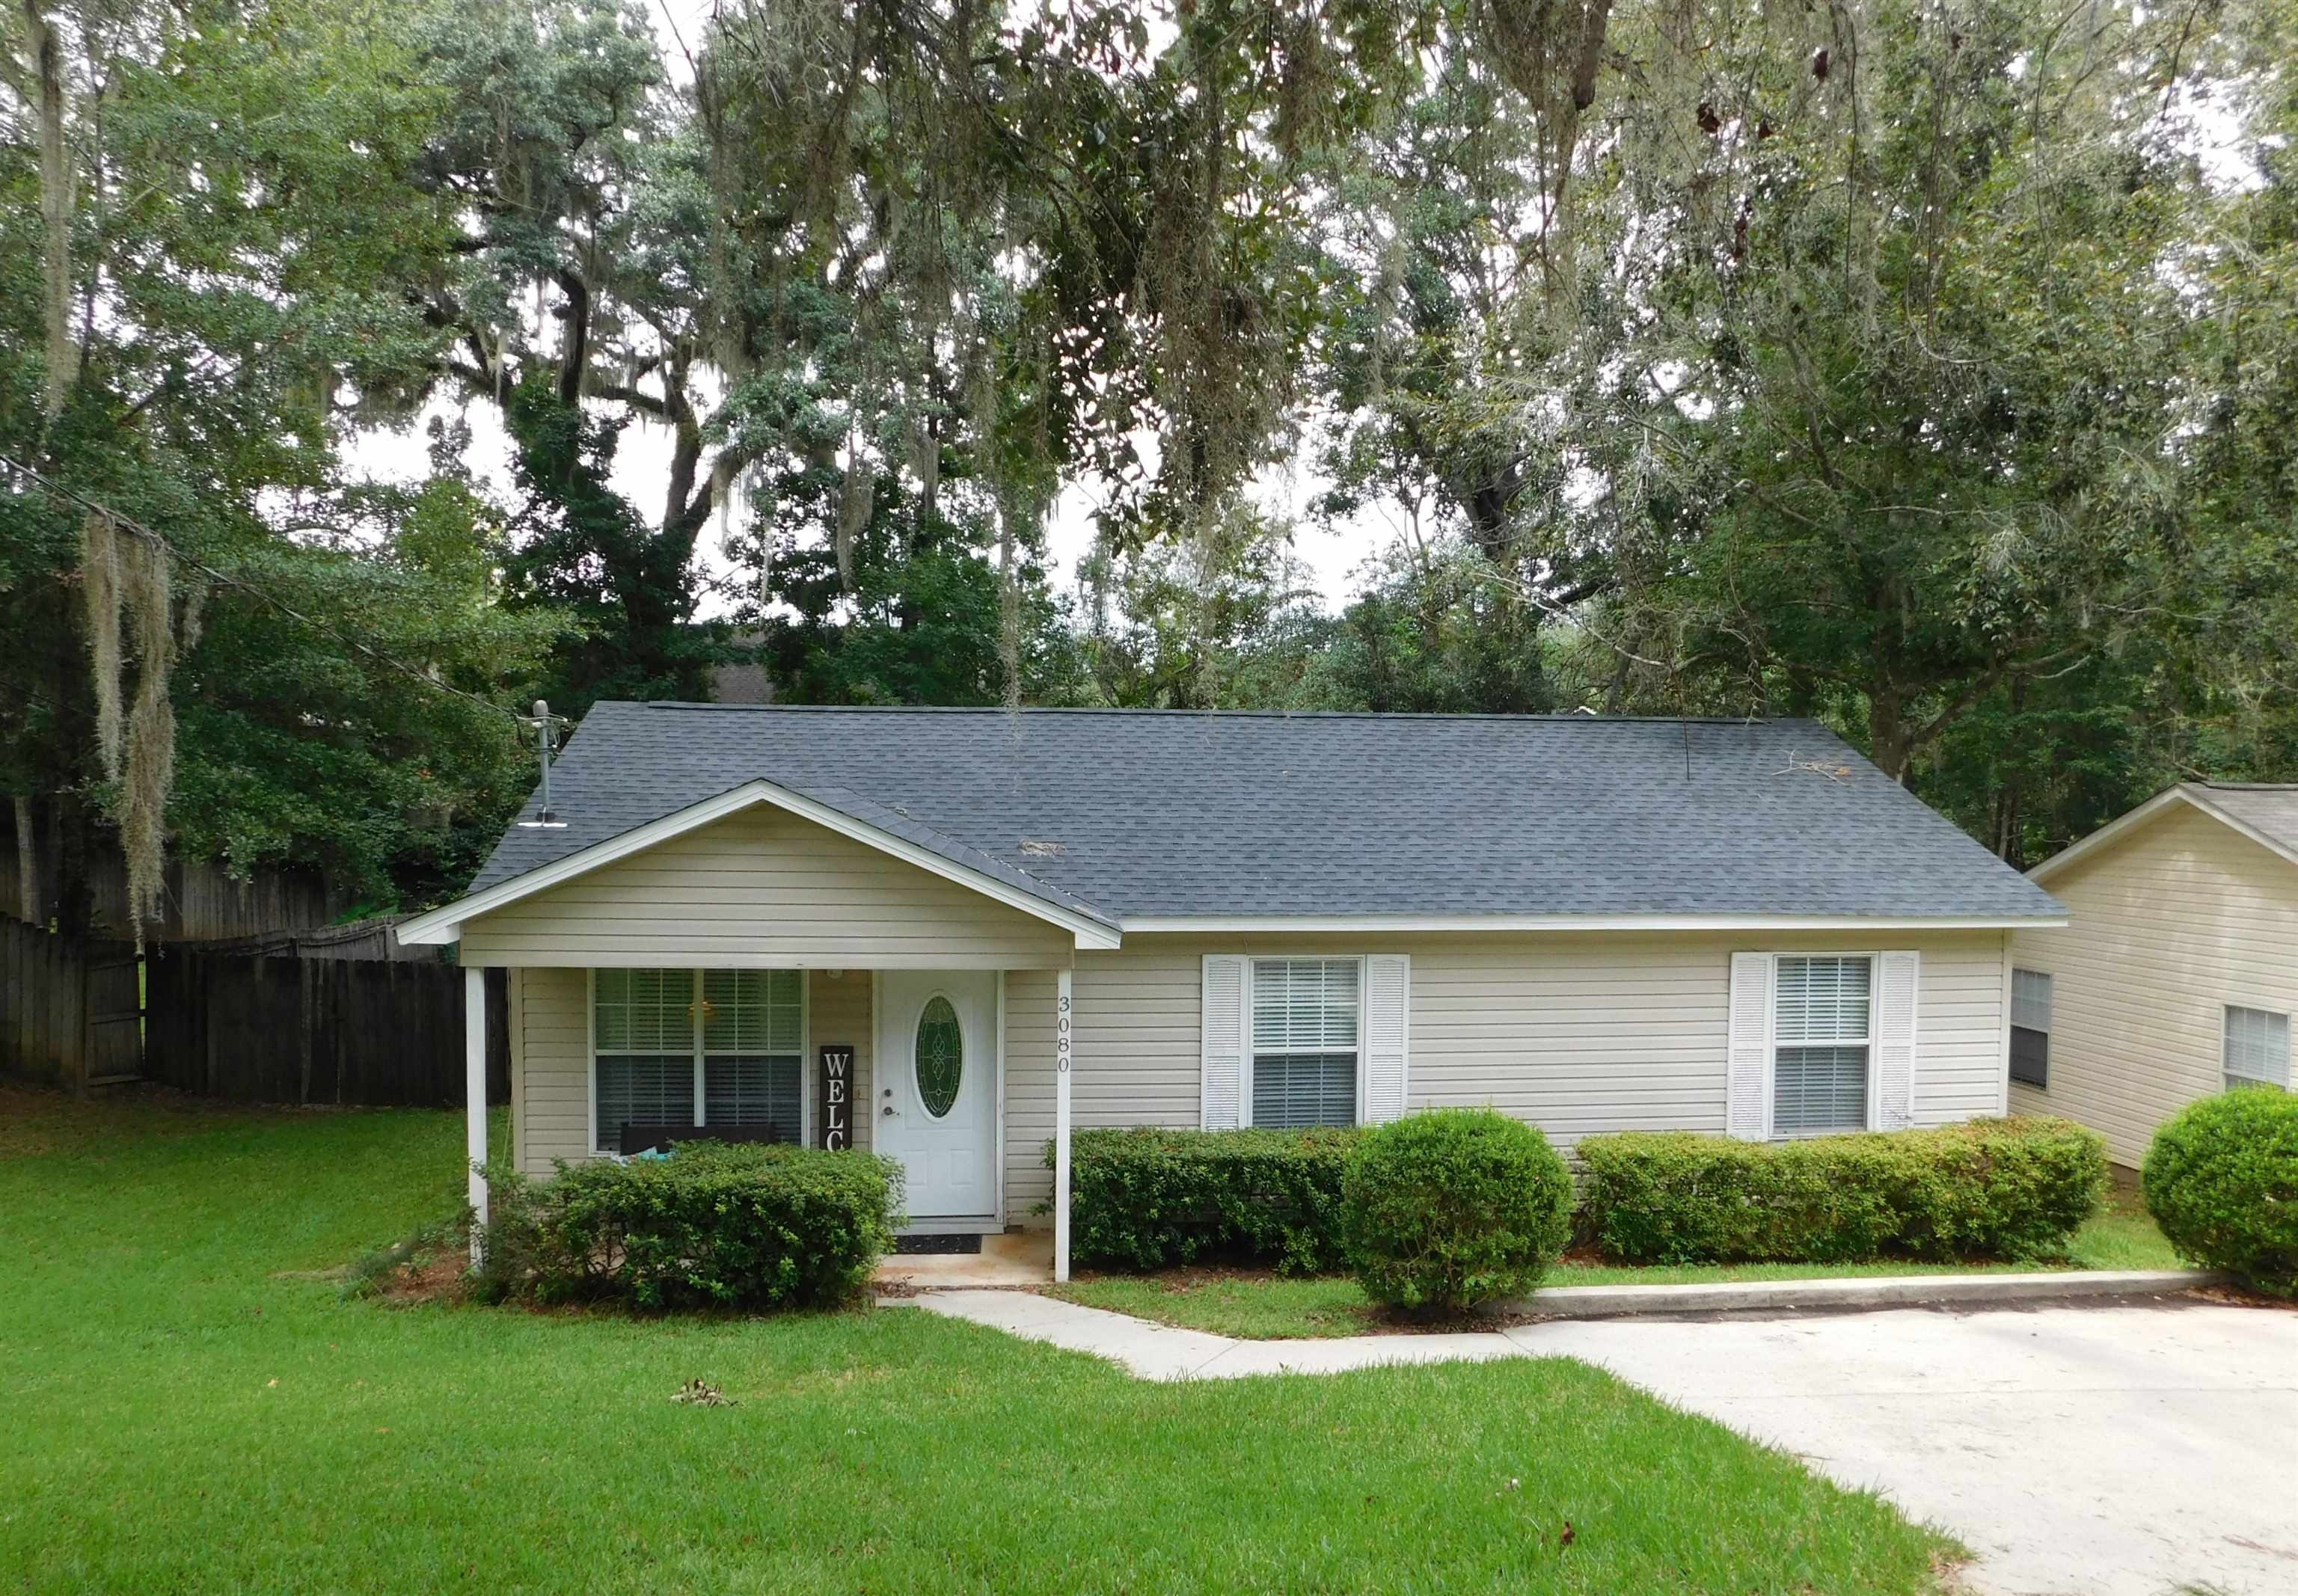 WOW! LOCATION, LOCATION, LOCATION on this super cute 3/2 located between Park Avenue and Apalachee Parkway for UNDER 200K!!! This cute little home is in central Tallahassee and close to everything. SO close to downtown. BRAND NEW ROOF 2021!!!! Water heater 2014, and HVAC 2015. This one has great square footage and lives SO large with separate living and family room areas. The HUGE family room off of the back of the home is perfect for a large den or movie room. Tons of windows in this one providing TONS of natural light. The large back family room overlooks the large FENCED and PRIVATE back yard! Large master bedroom has large walk in closet. Plenty of closet space in this one. The huge back yard would be perfect for a large shed. Come see this one today as it will NOT last!